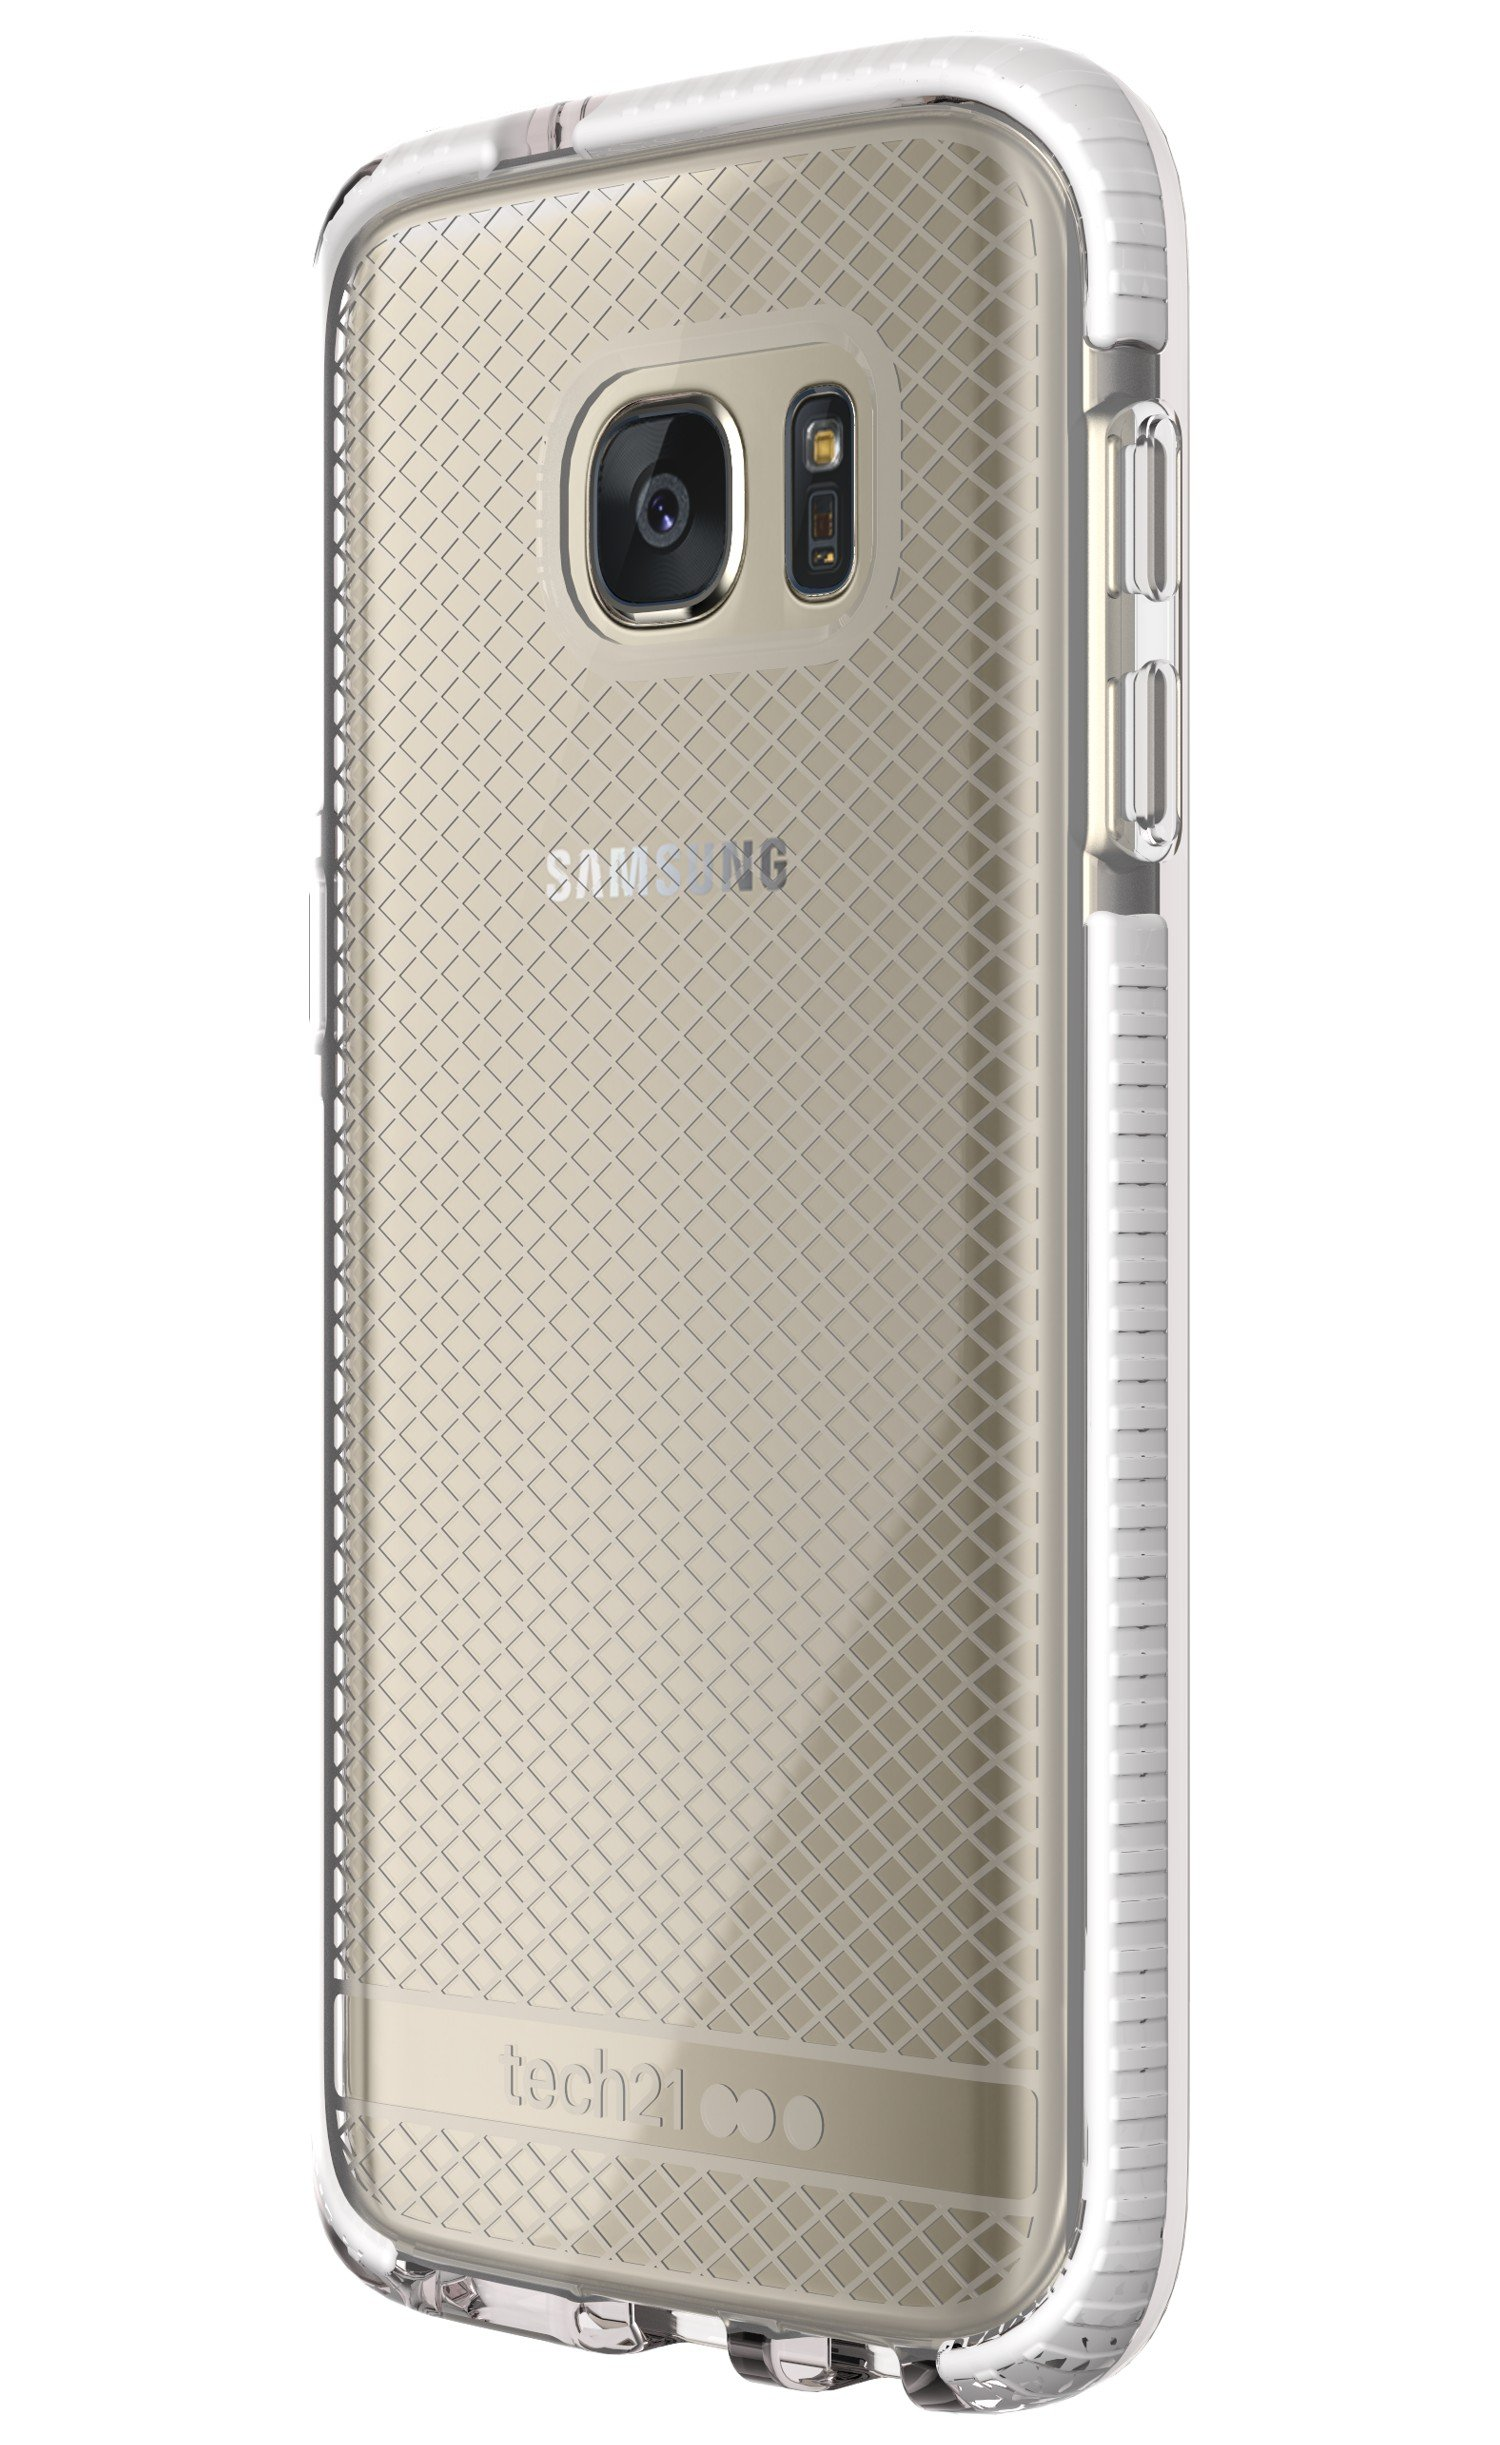 Tech21 Evo Check Case for Galaxy S7 - Clear/White by tech21 (Image #5)